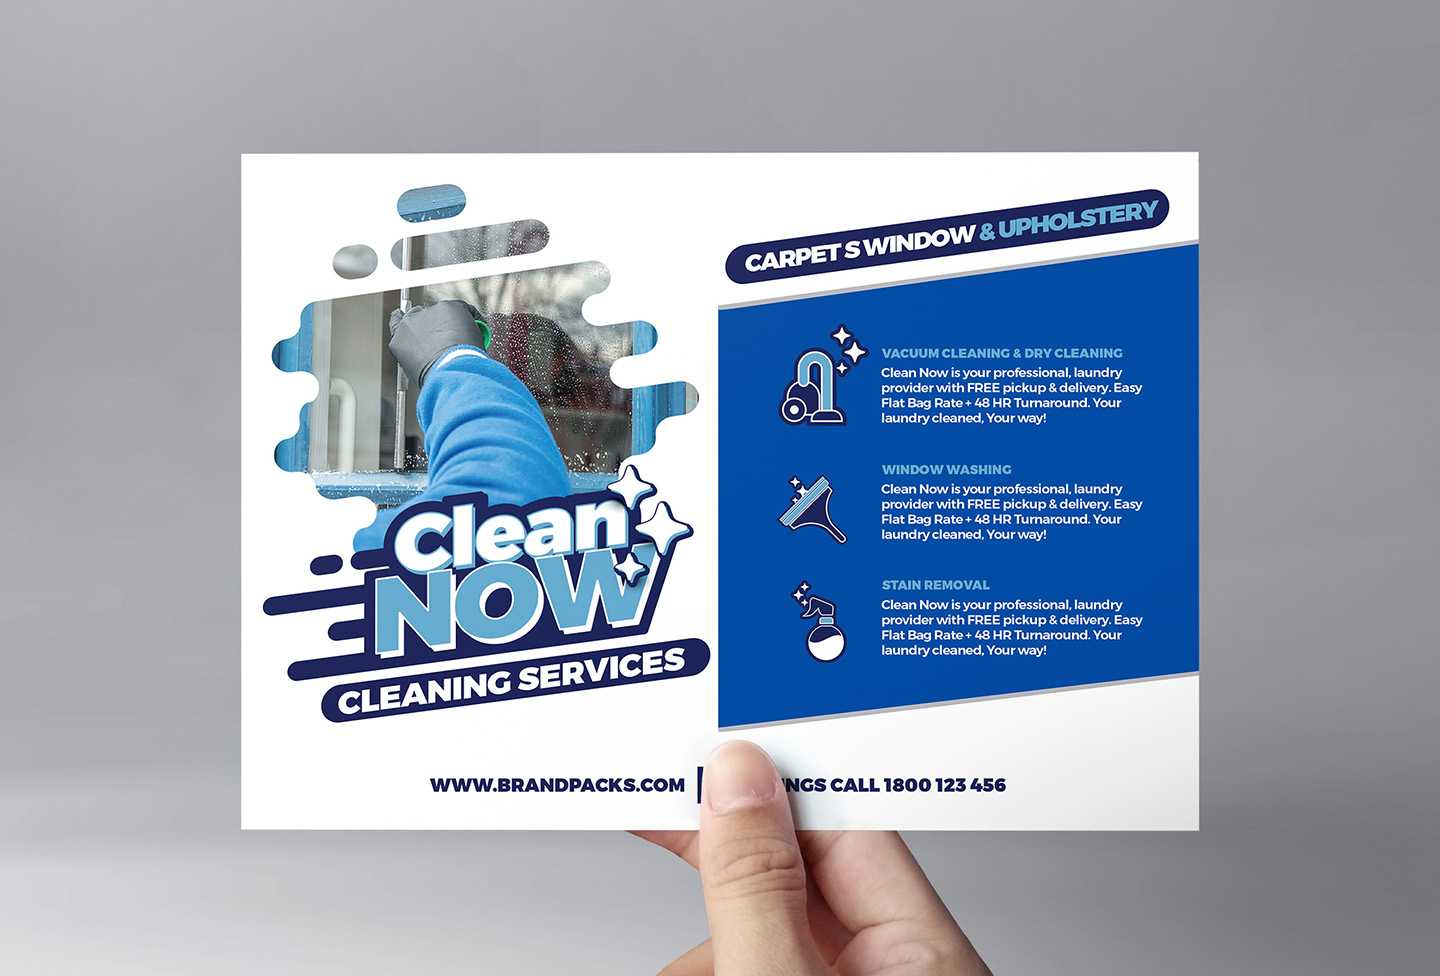 Cleaning Service Flyer Template In Psd, Ai & Vector - Brandpacks With Regard To Cleaning Brochure Templates Free